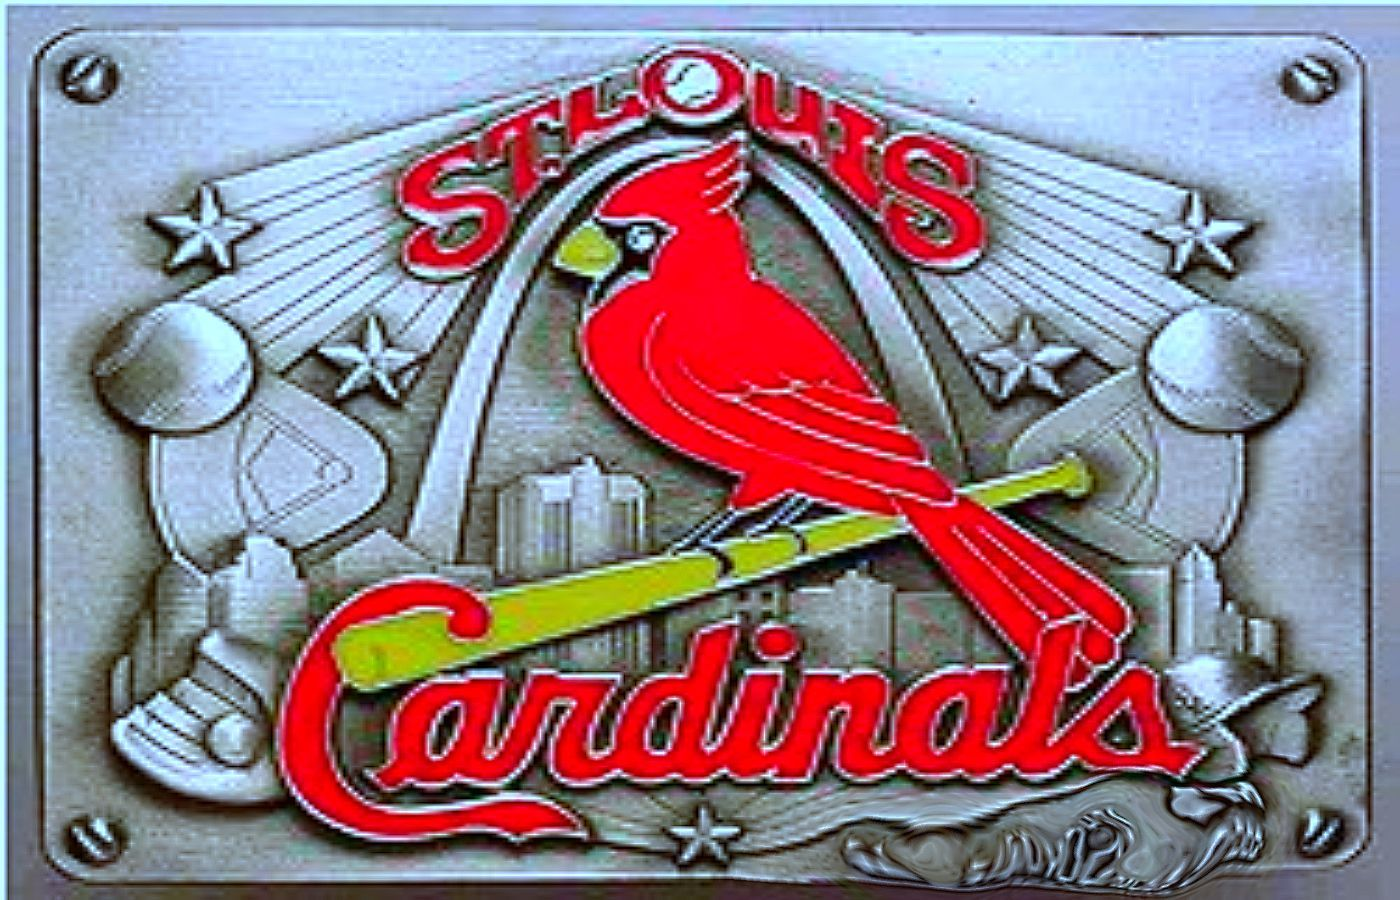 St Louis Cardinals Wallpaper Hd Pixels Talk 910 512 Cardinals